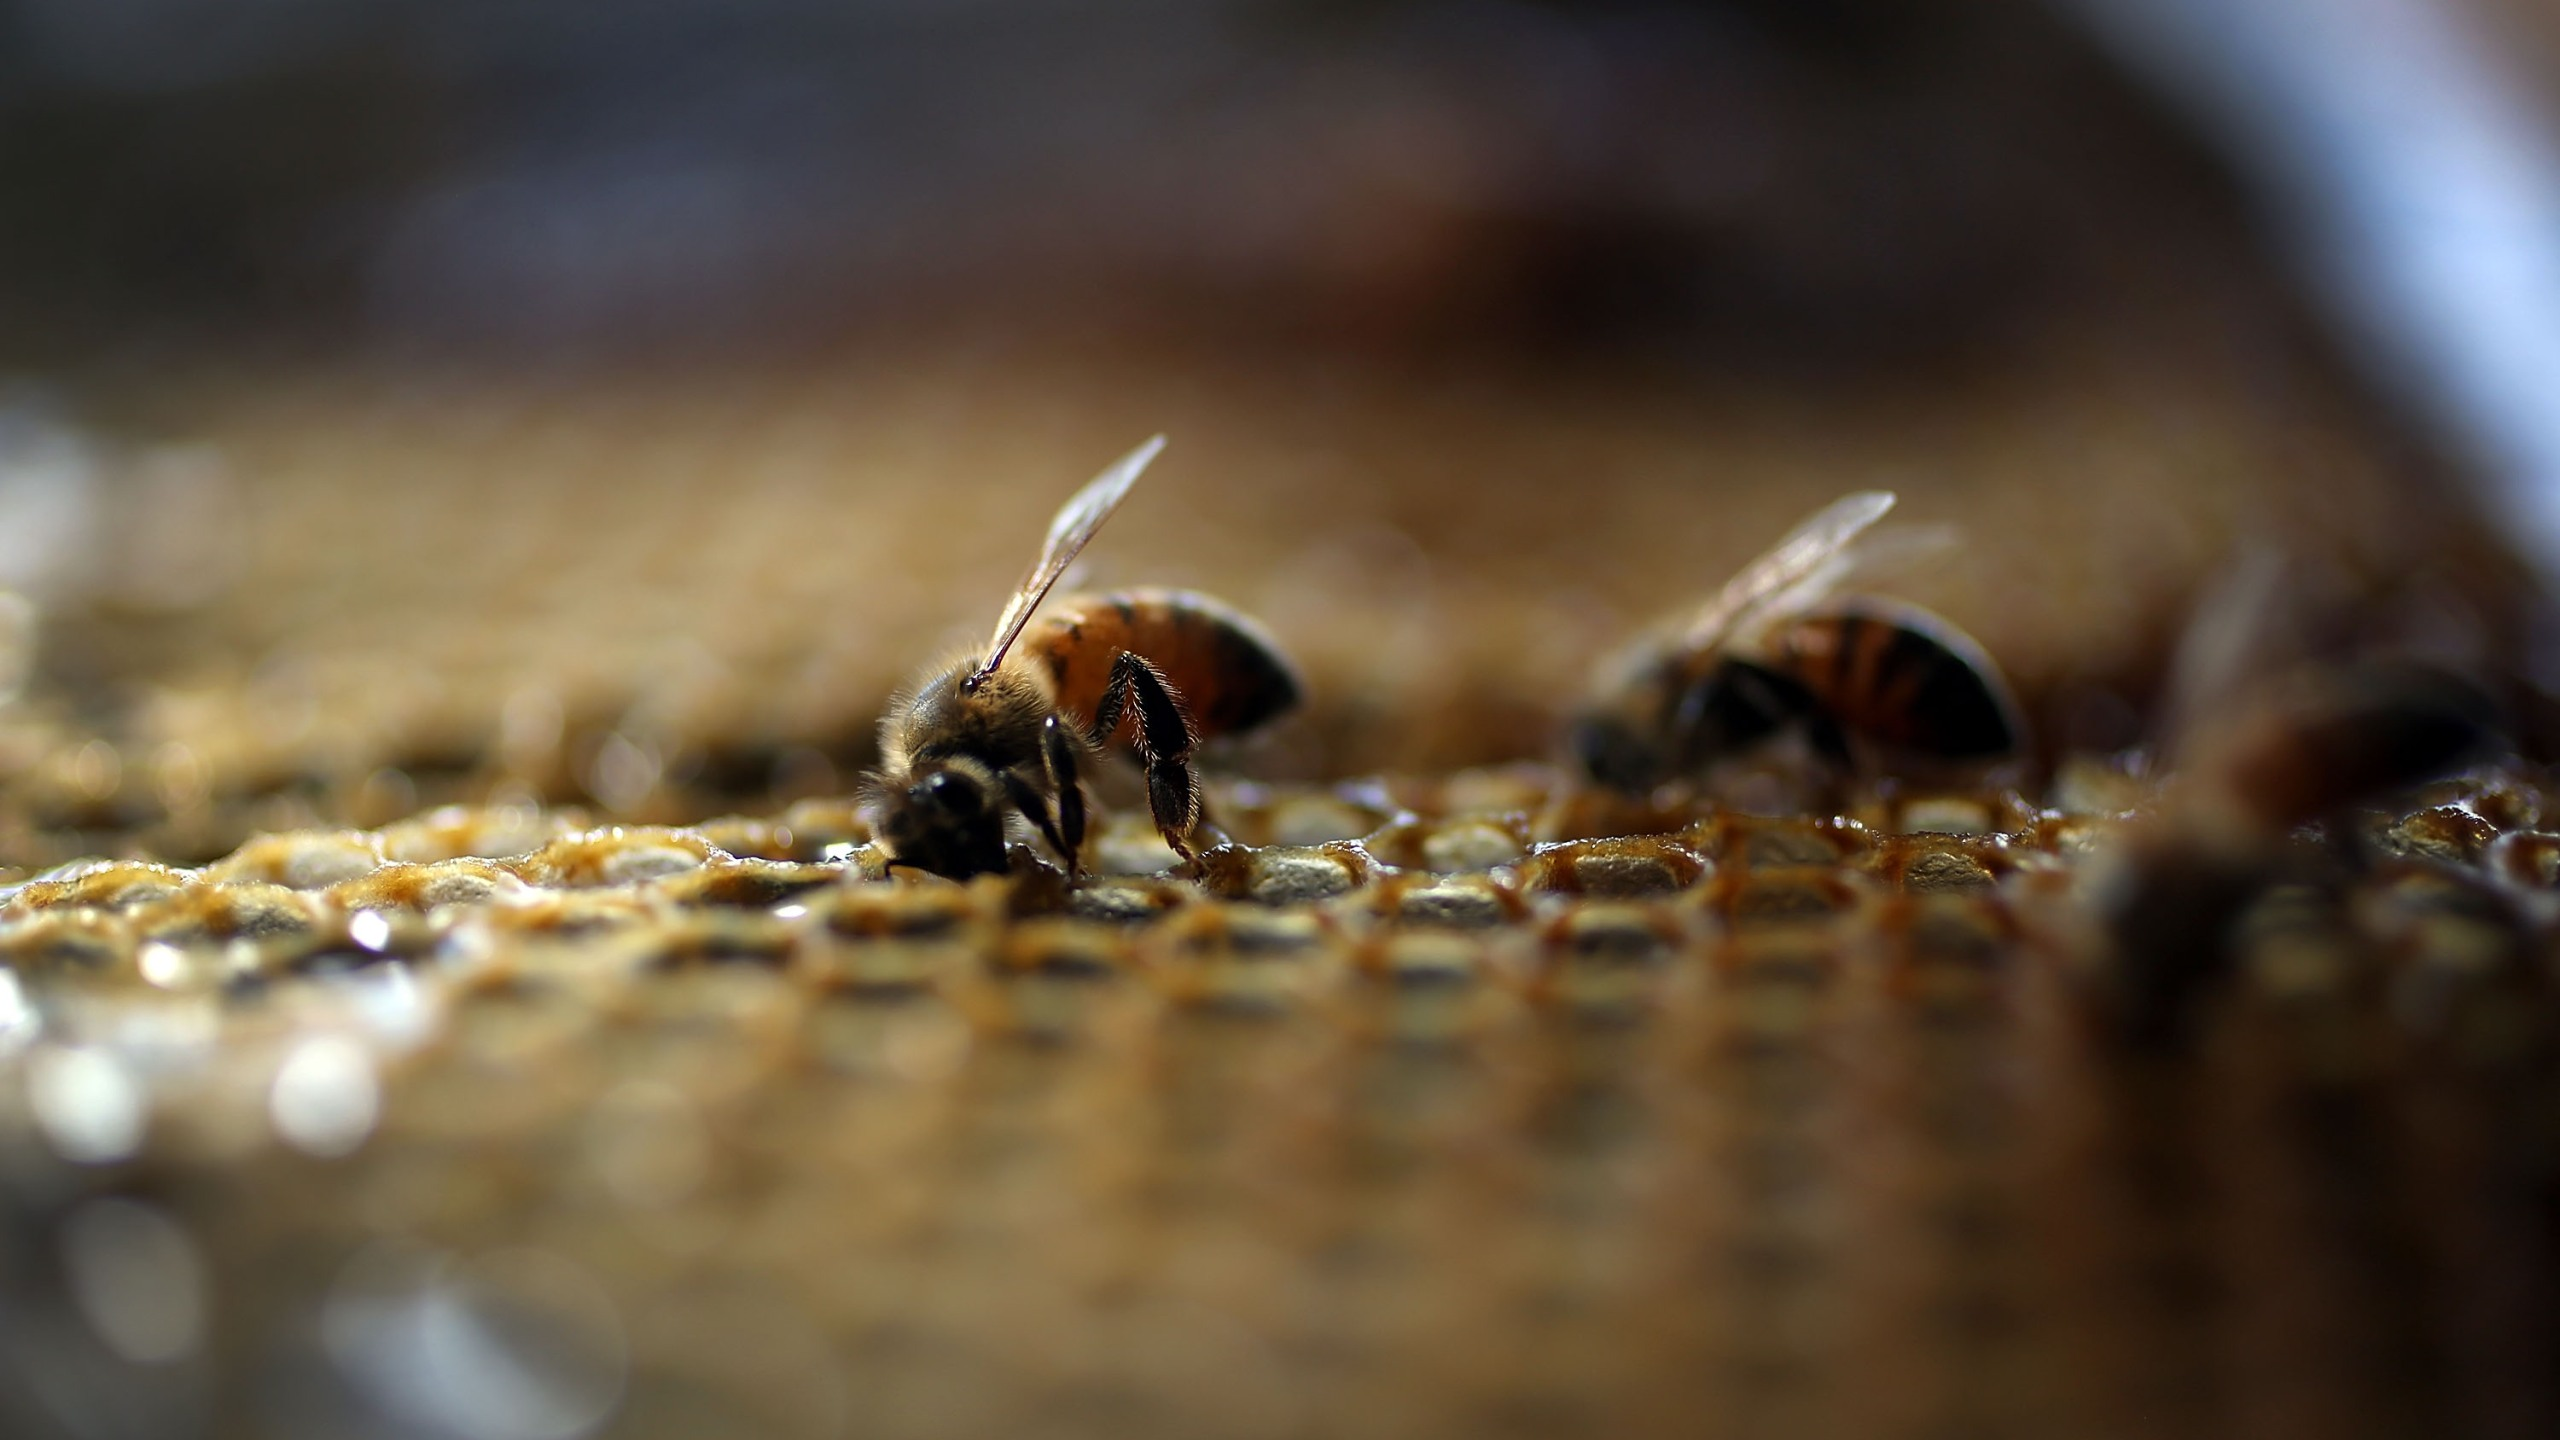 Honeybees are seen at the J & P Apiary and Gentzel's Bees, Honey and Pollination Company on May 19, 2015 in Homestead, Florida. (Joe Raedle/Getty Images)